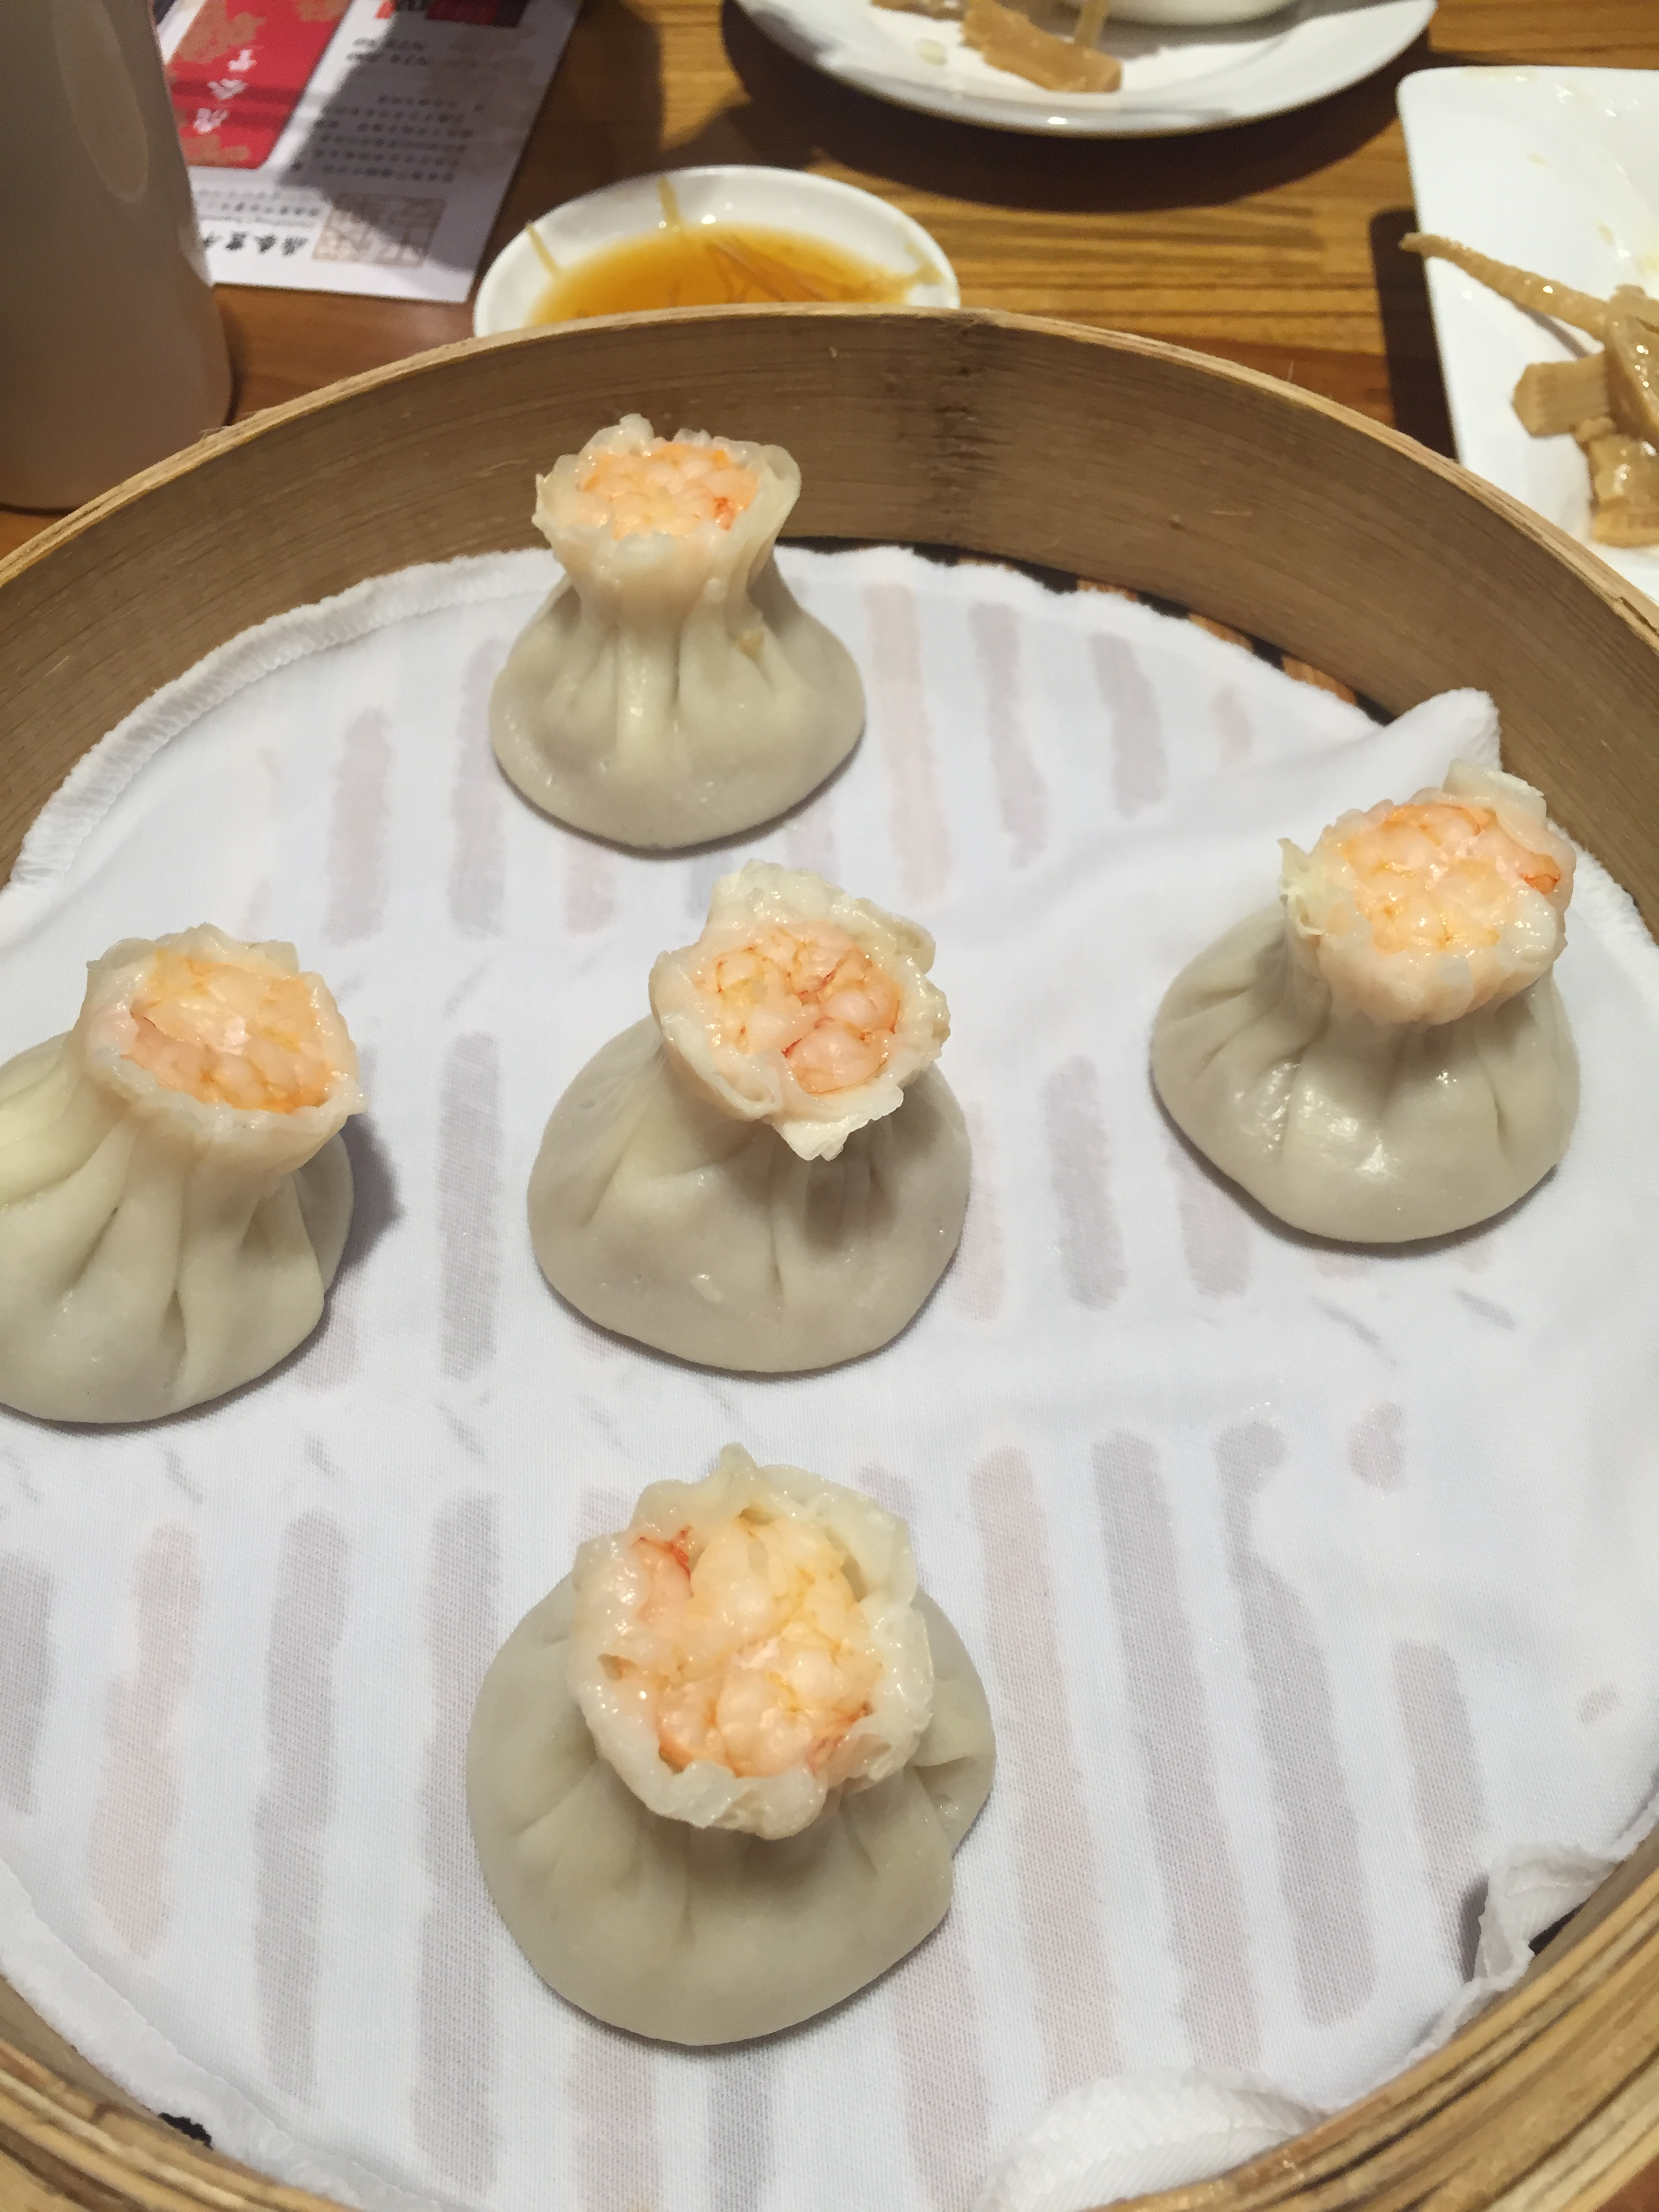 Not famous, but still really tasty shrimp dumplings.